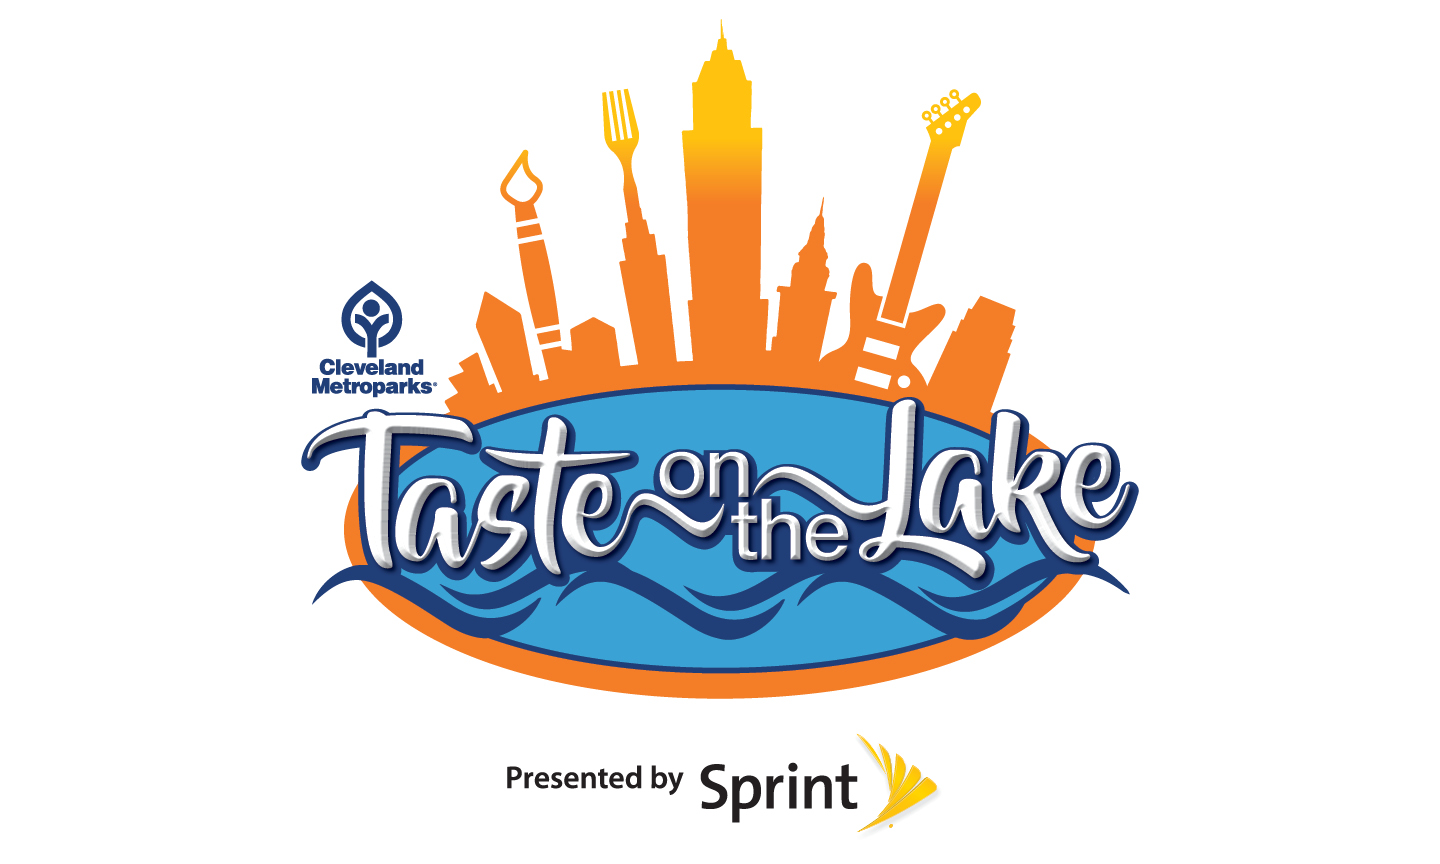 Cleveland Metroparks brings two-day 'Taste on the Lake' event and Sunday concert series to Edgewater Park